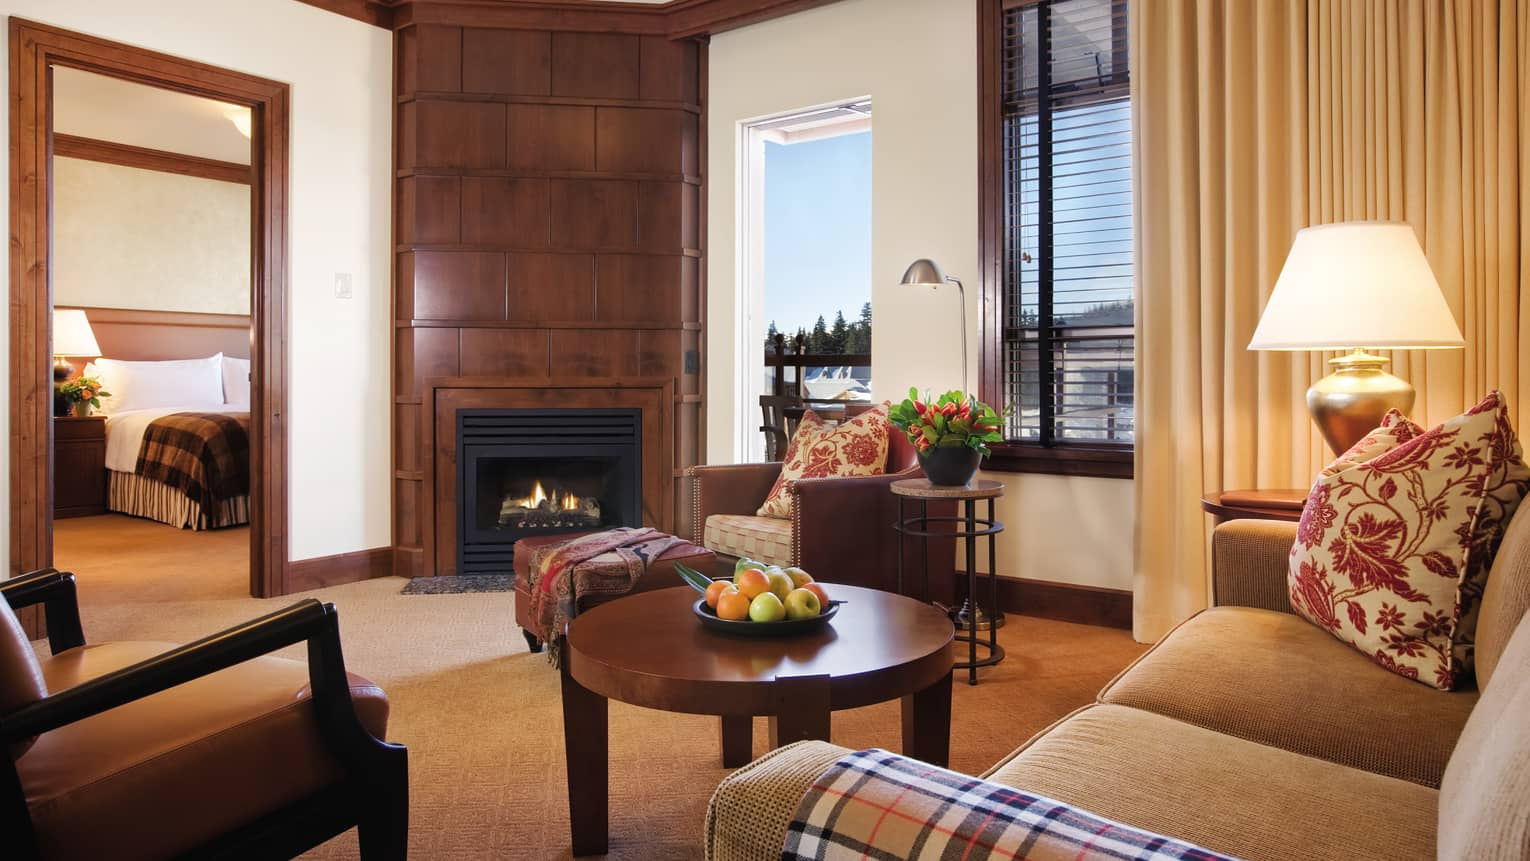 Executive Suite with wood panel fireplace between bedroom, patio doors, seating area, table with fruit bowl